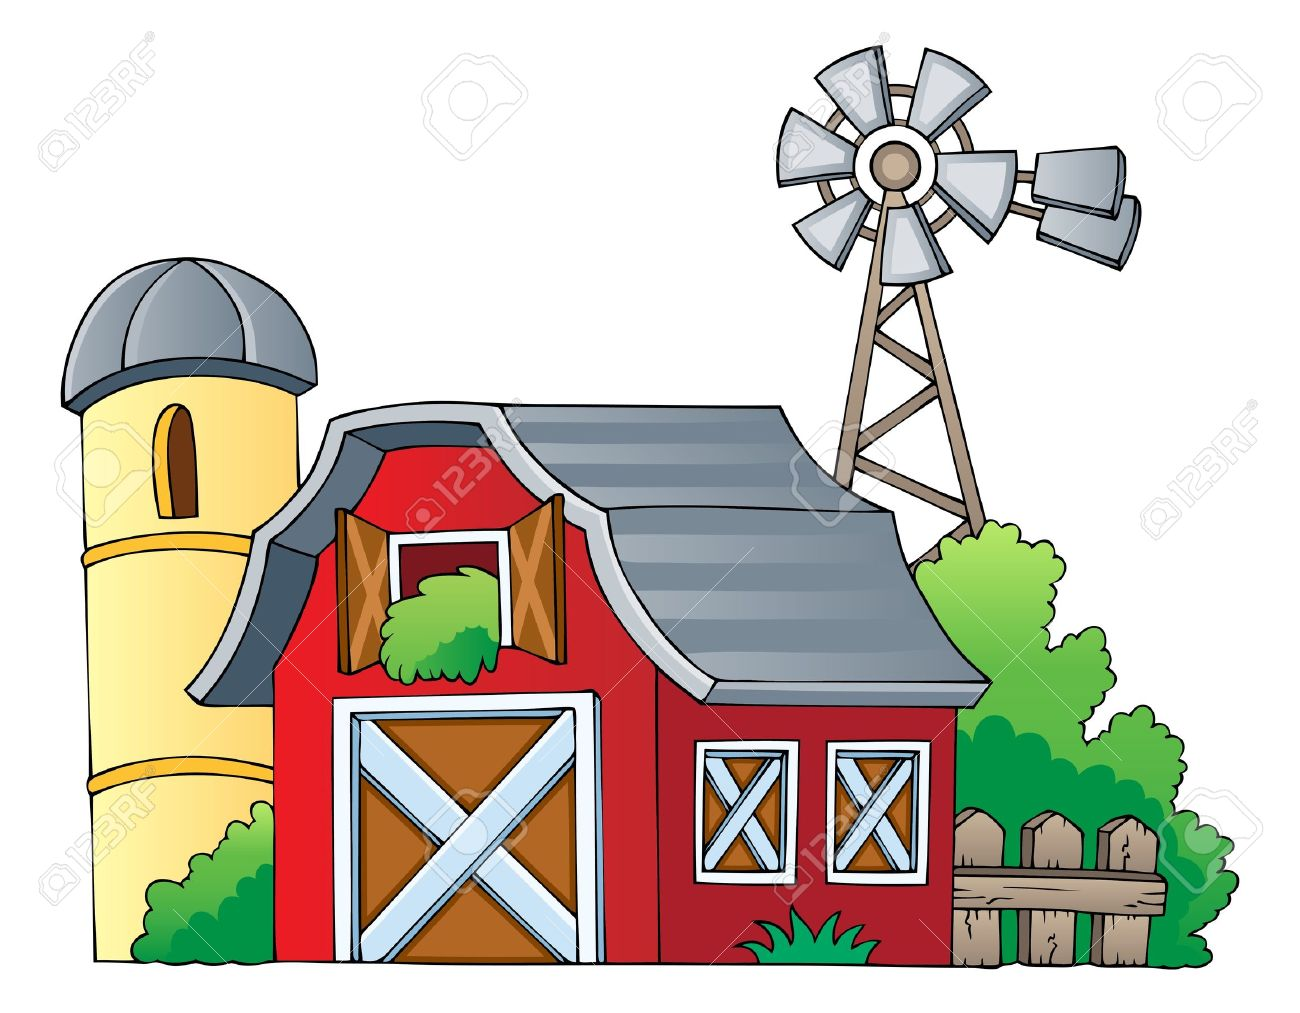 Farm Theme Image 1.